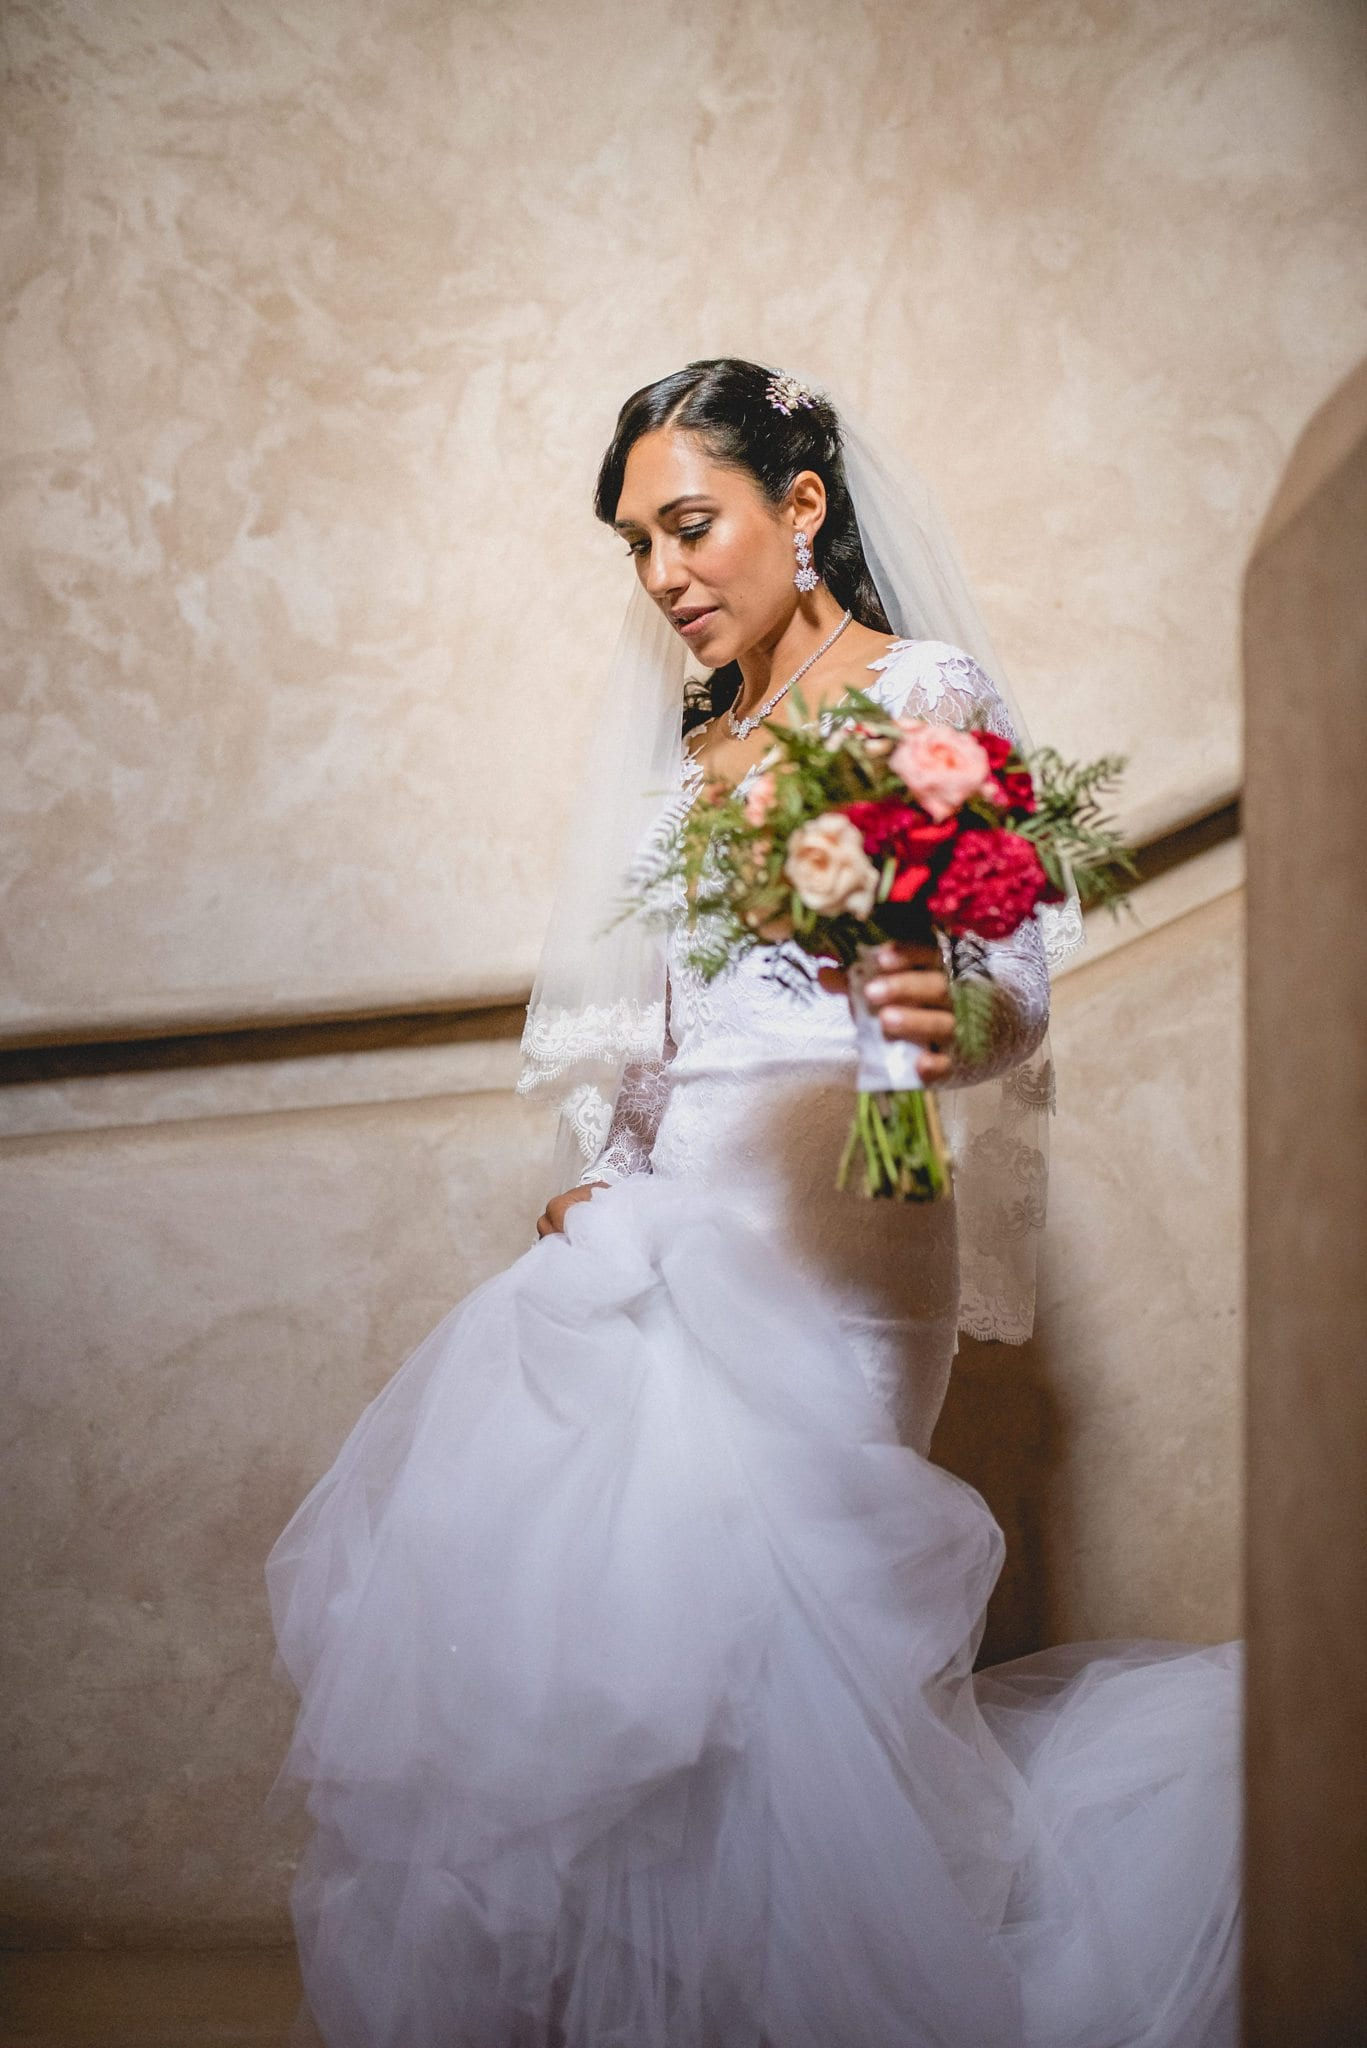 Aaysha descends the stairs in her dress and veil, holding a bouquet of red and peach flowers.